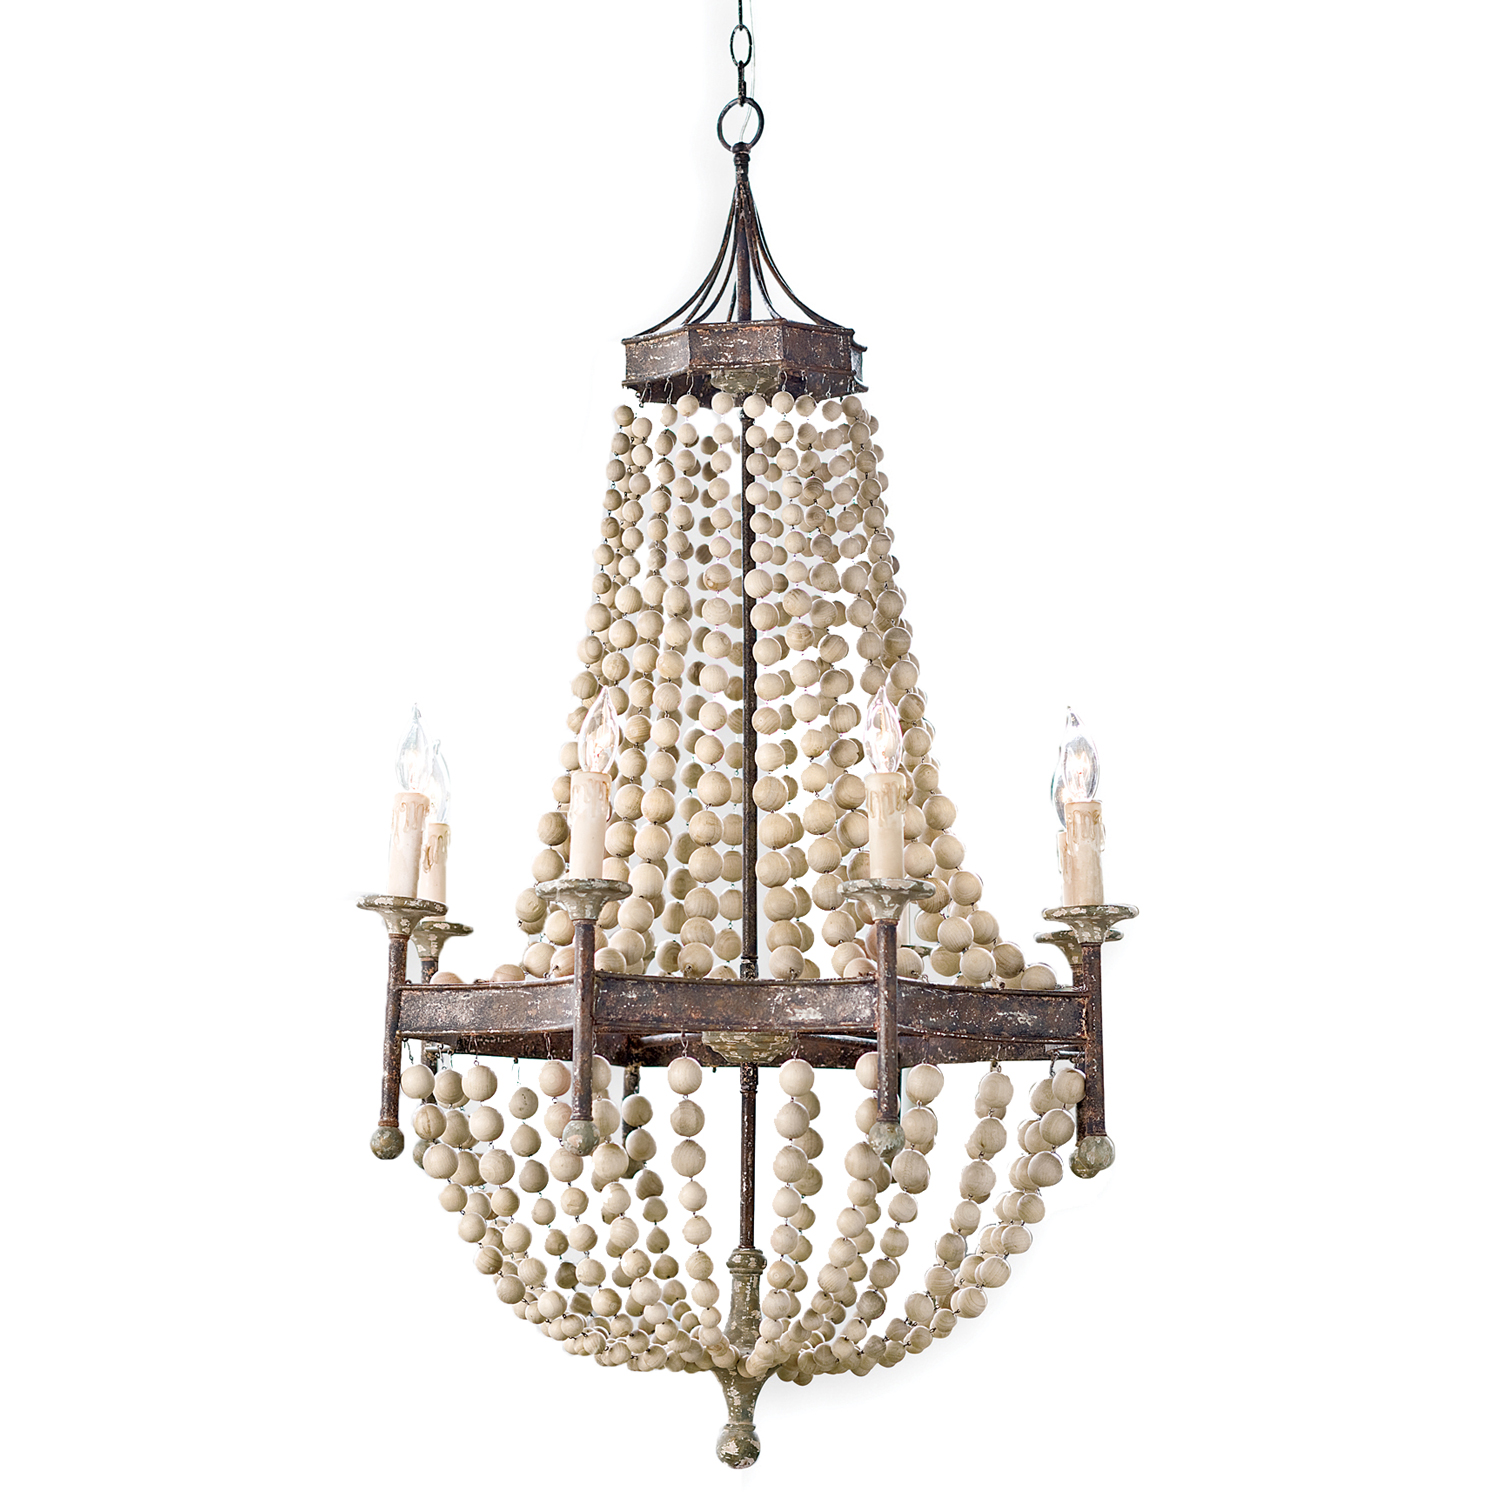 Designer chandeliers eclectic chandeliers kathy kuo home maroma coastal beach scalloped wood bead metal chandelier arubaitofo Gallery